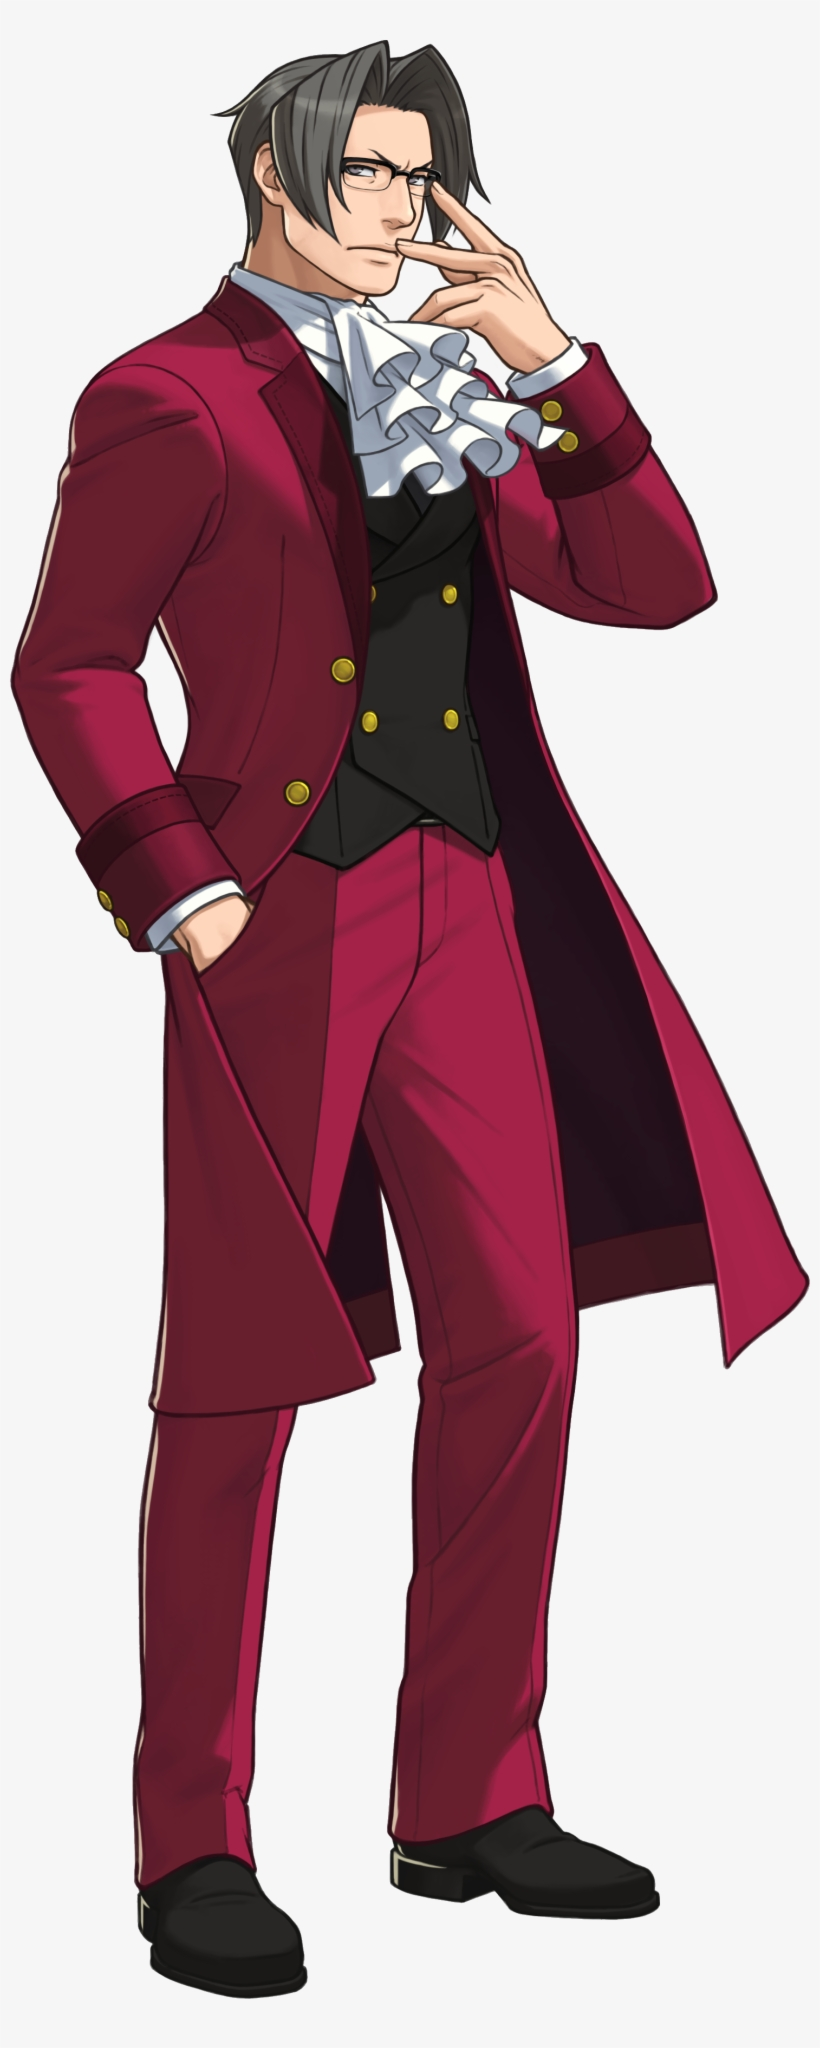 Gyakuten Kenji In Joypolis Miles Edgeworth Ace Attorney 5